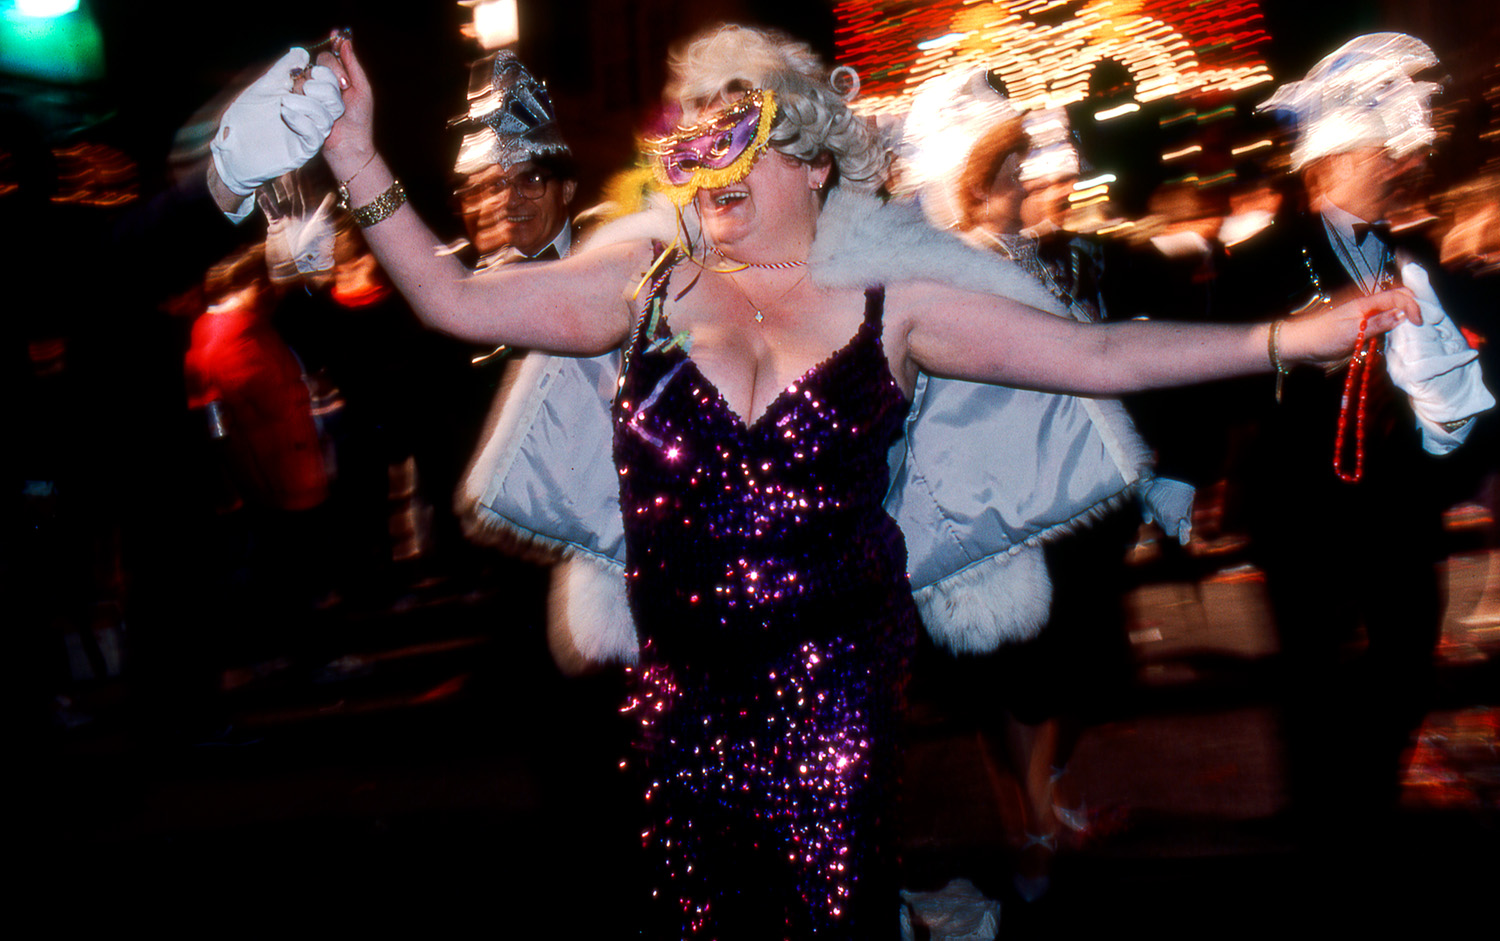 Rubin_Galveston Mardi Gras_purpleDress.jpg